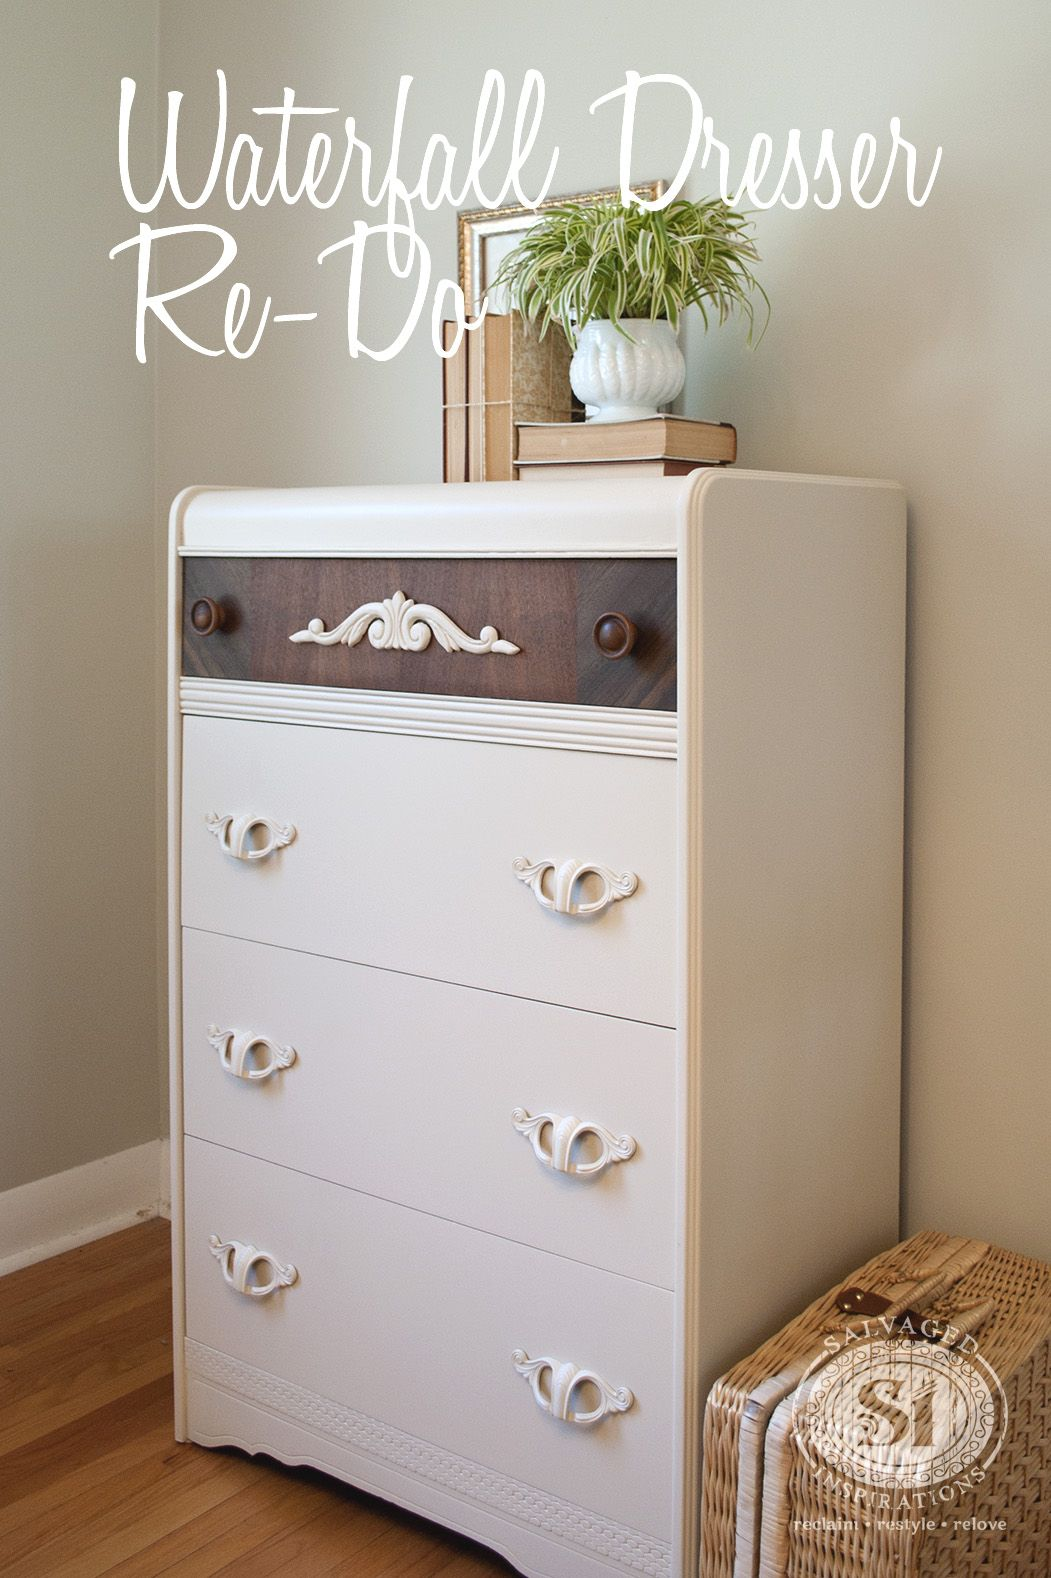 Best Waterfall Dresser – Not A Huge Fan General Finishes Milk 640 x 480